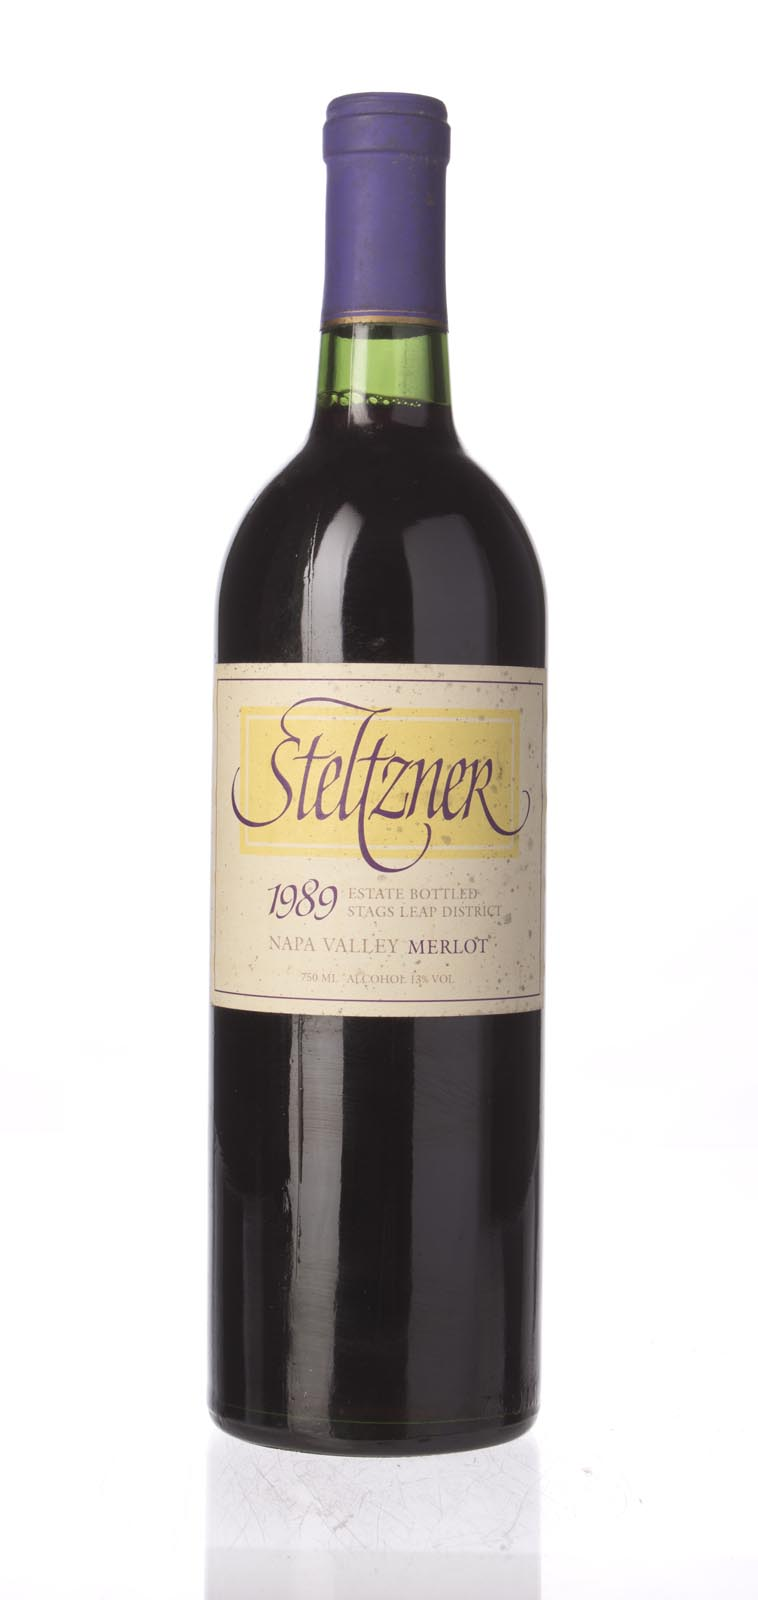 Steltzner Merlot 1989, 750mL () from The BPW - Merchants of rare and fine wines.